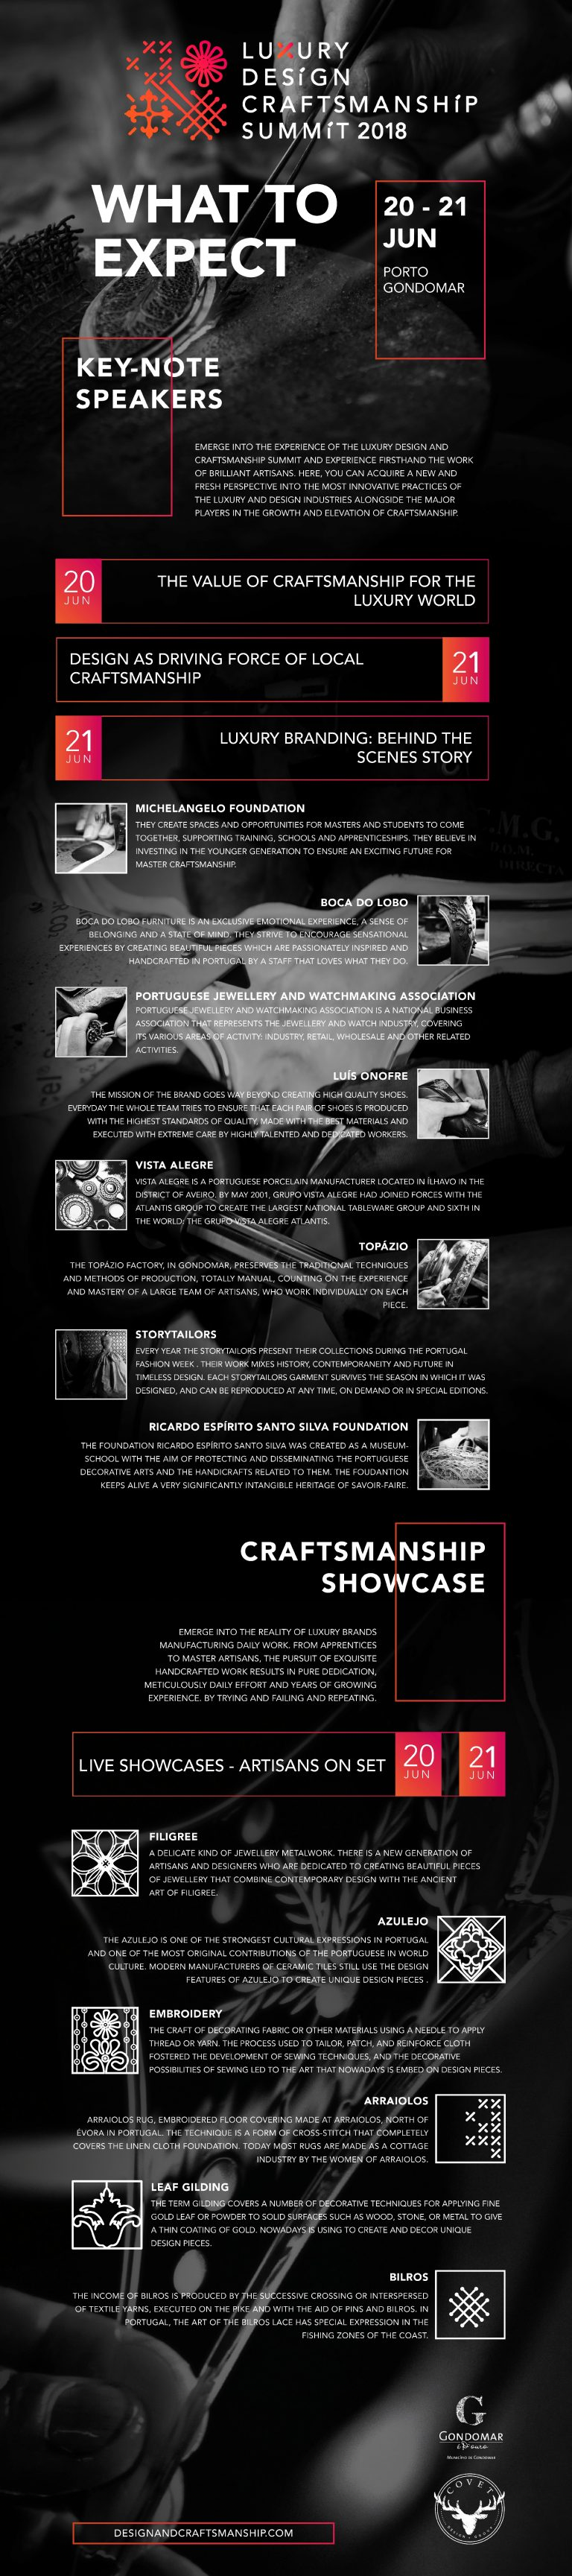 Keeping Up With The Luxury Design And CraftsmanshipSummit 2018 1